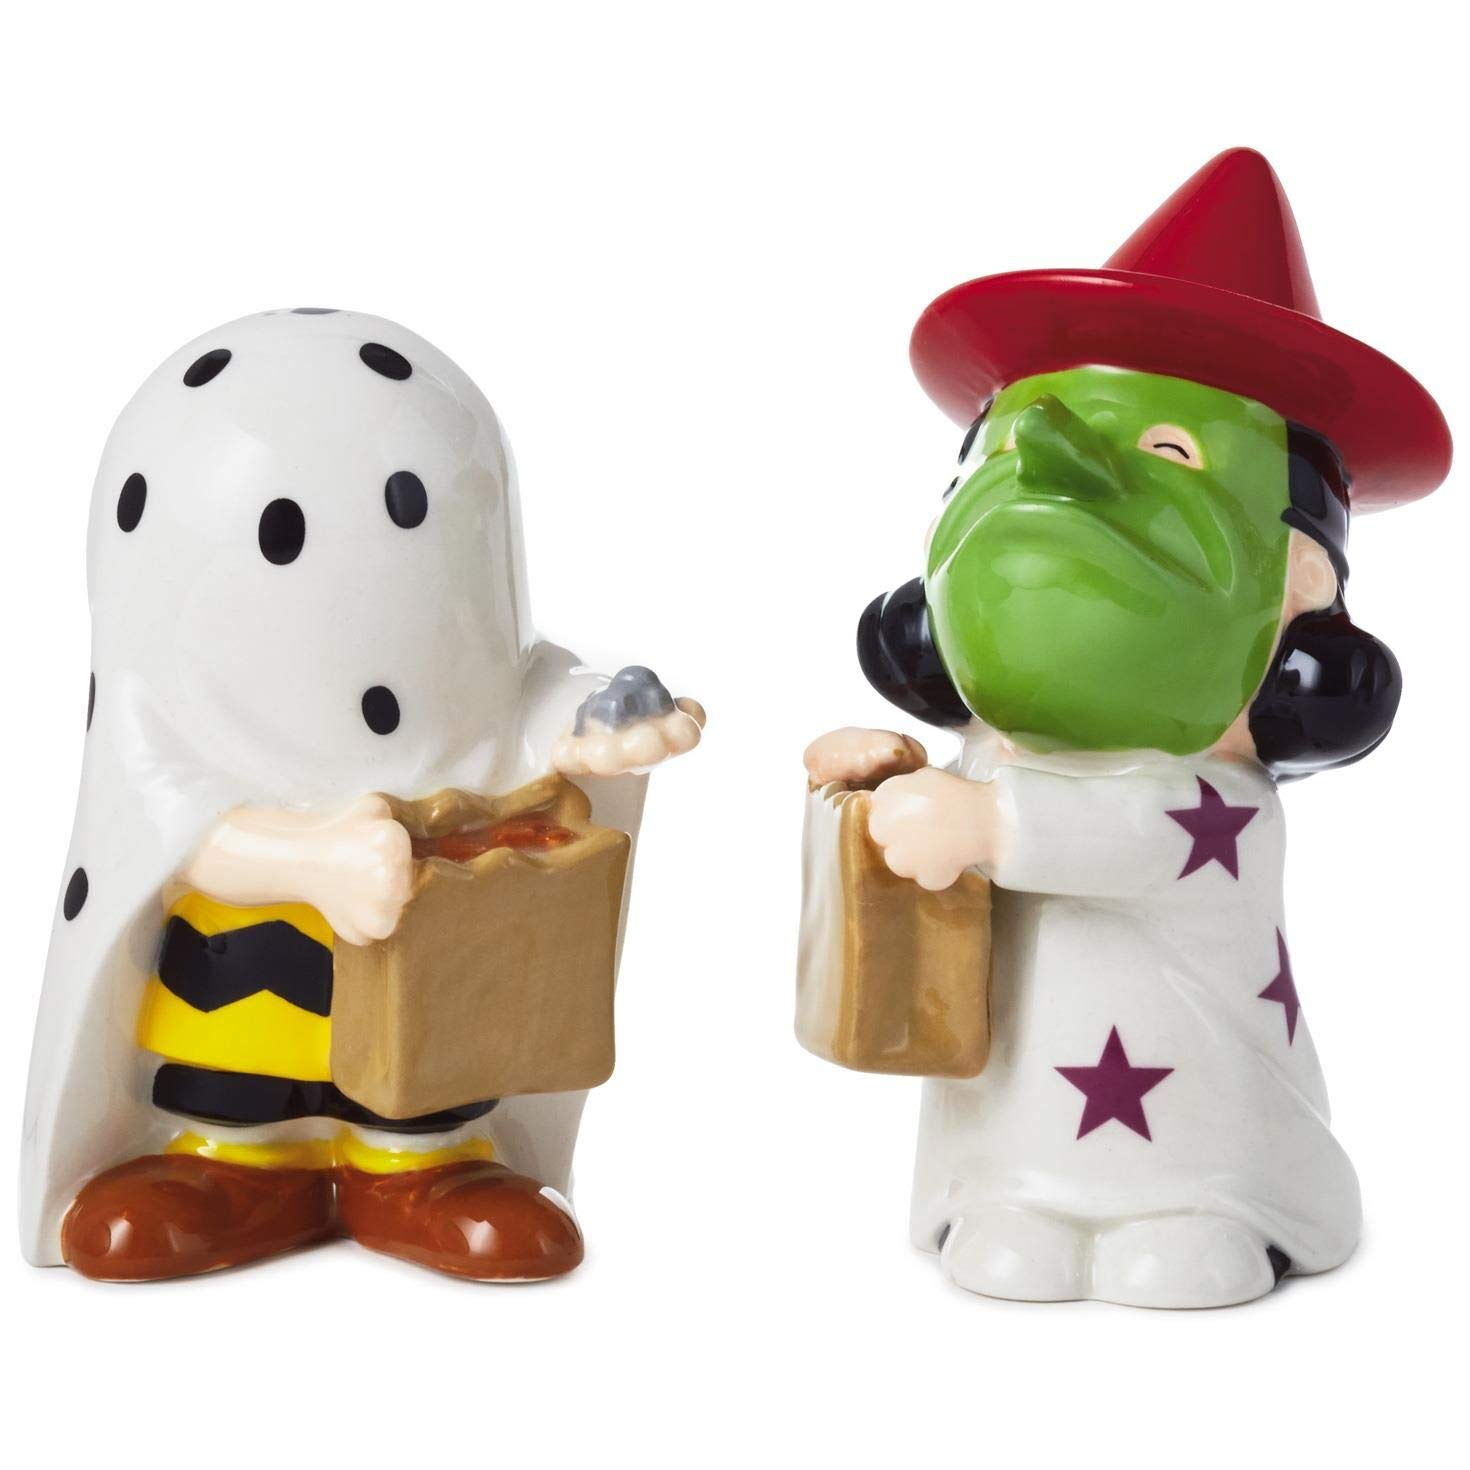 Peanuts Halloween Ceramic Salt and Pepper Shakers, Set of 2 Kitchen Accessories Movies & TV